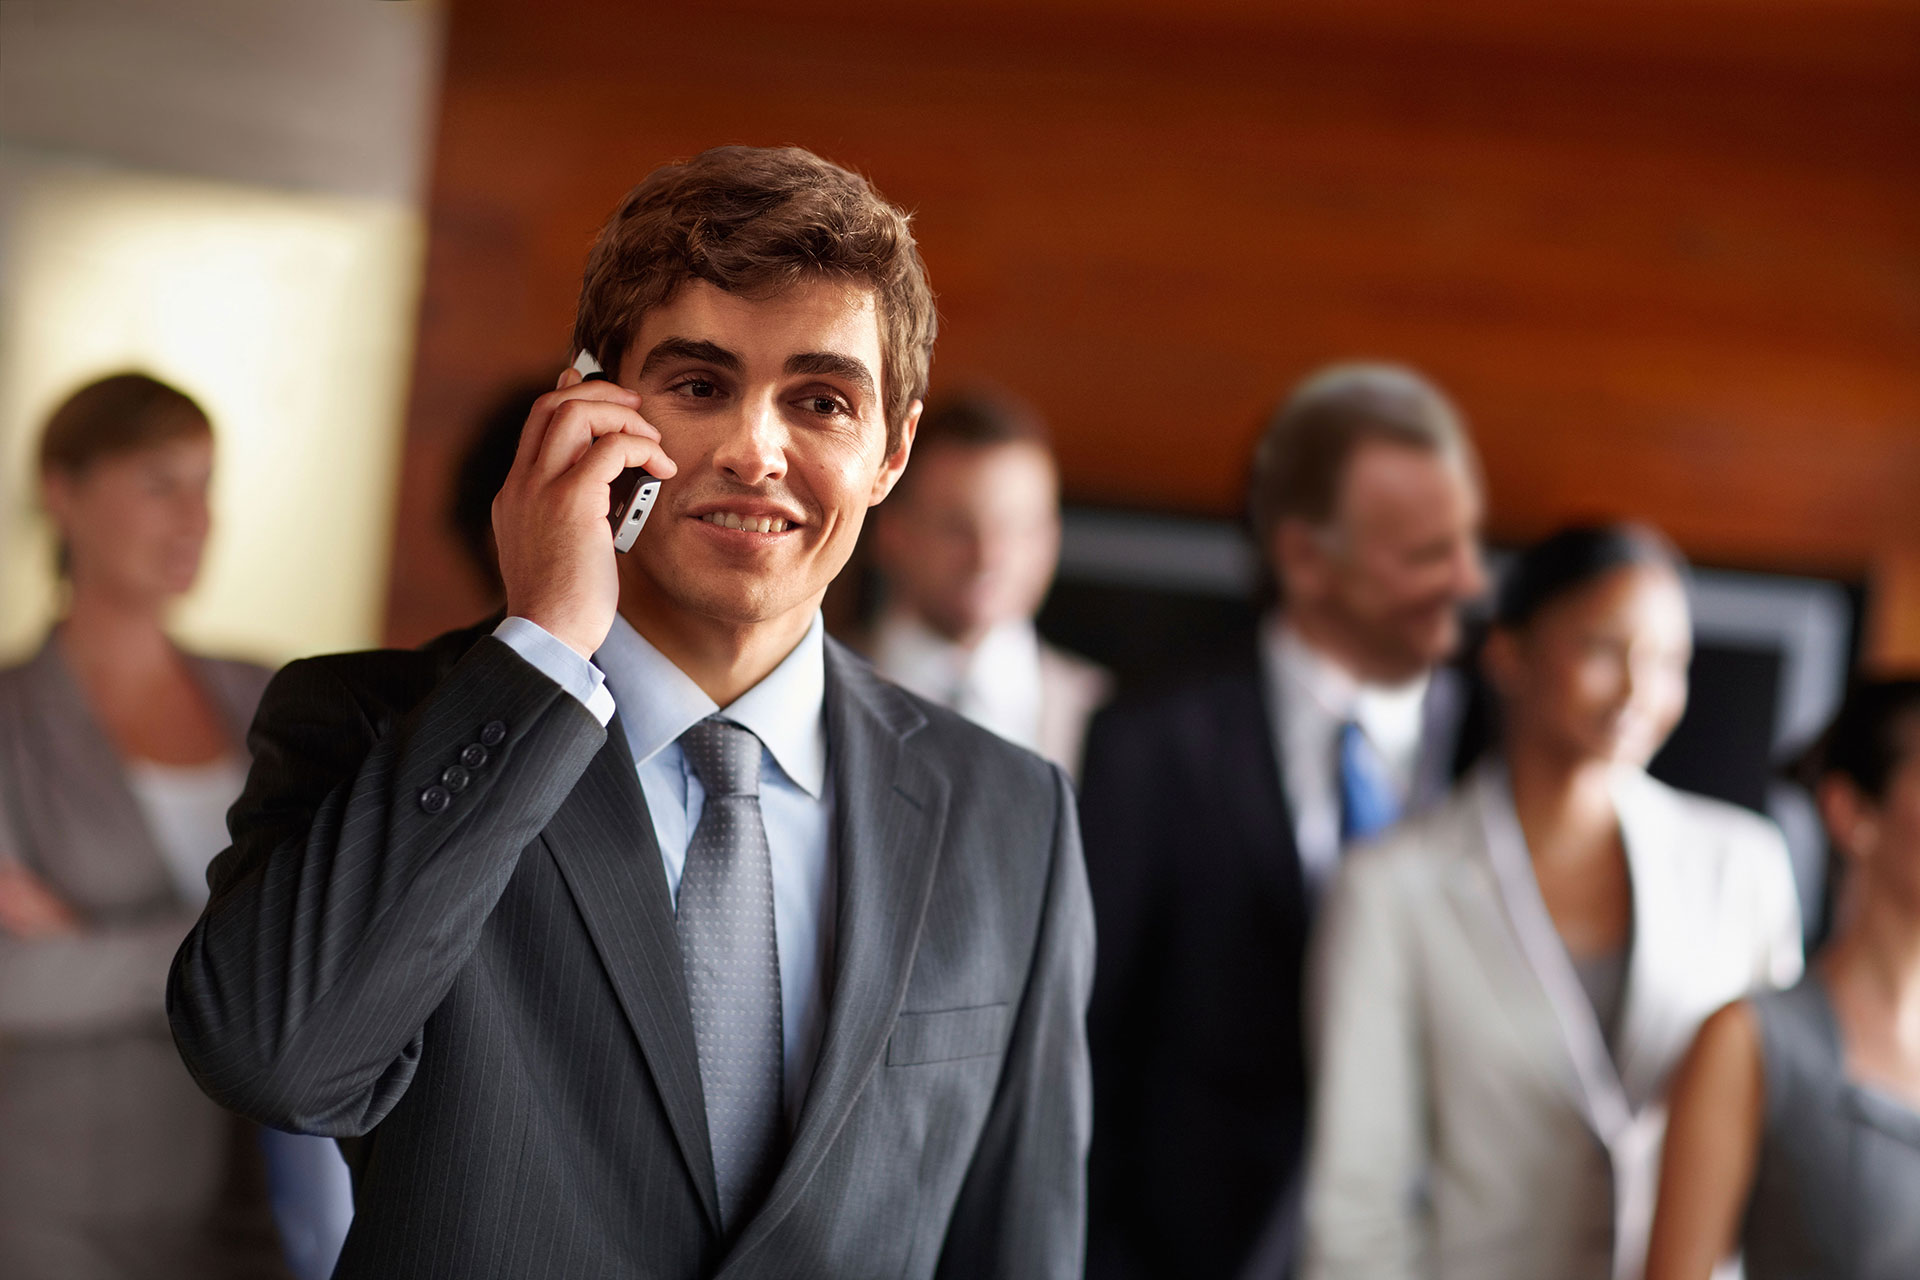 When should you call a prospect on their cell phone? | Bad deal making